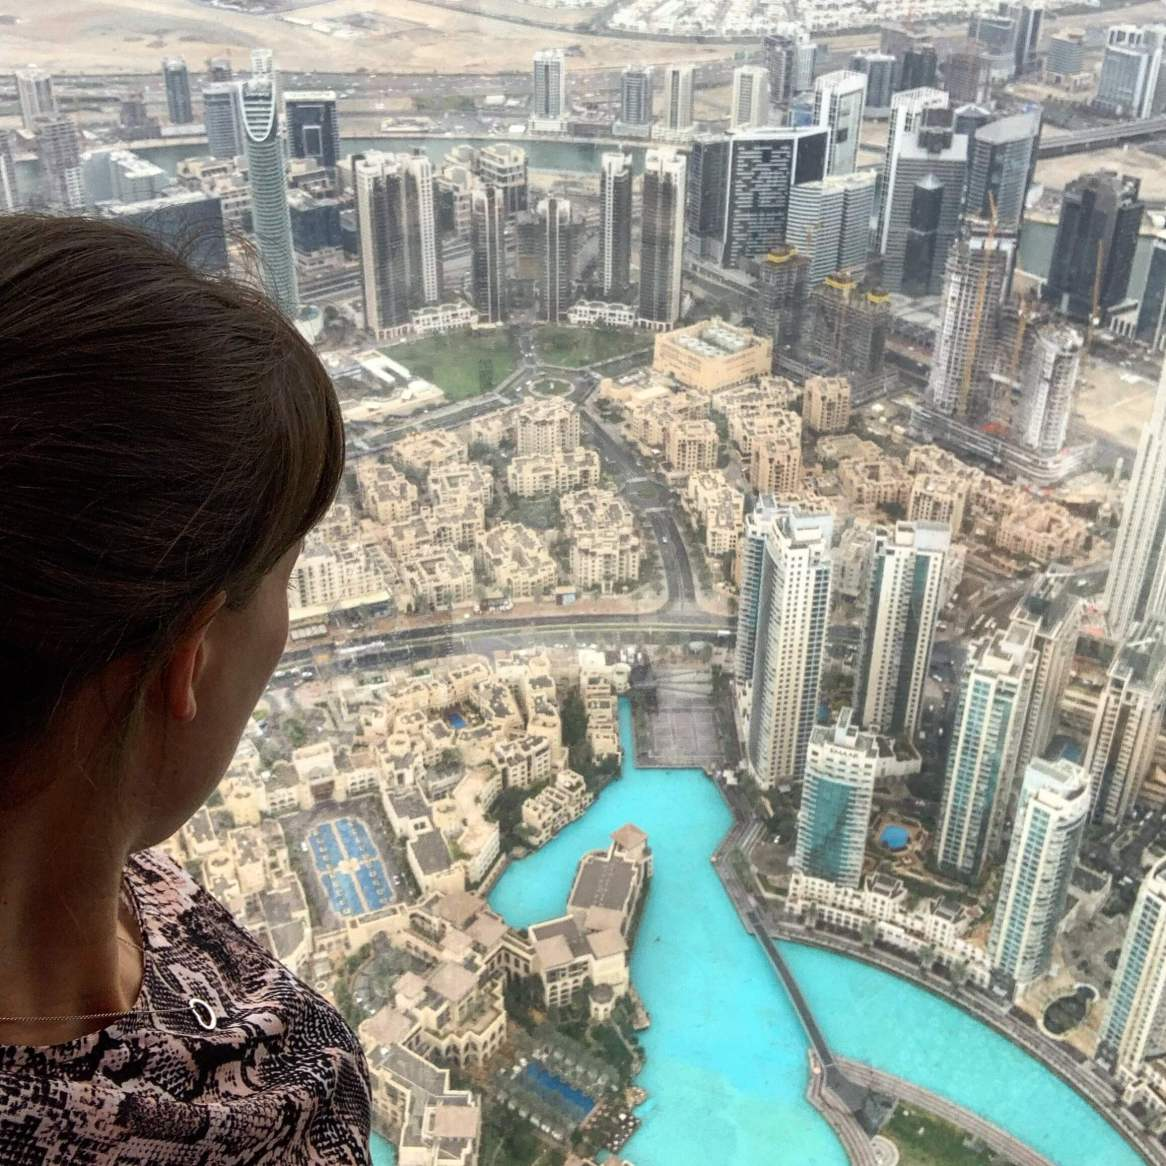 An image of myself looking out over the views of Dubai from the Burj Khalifa